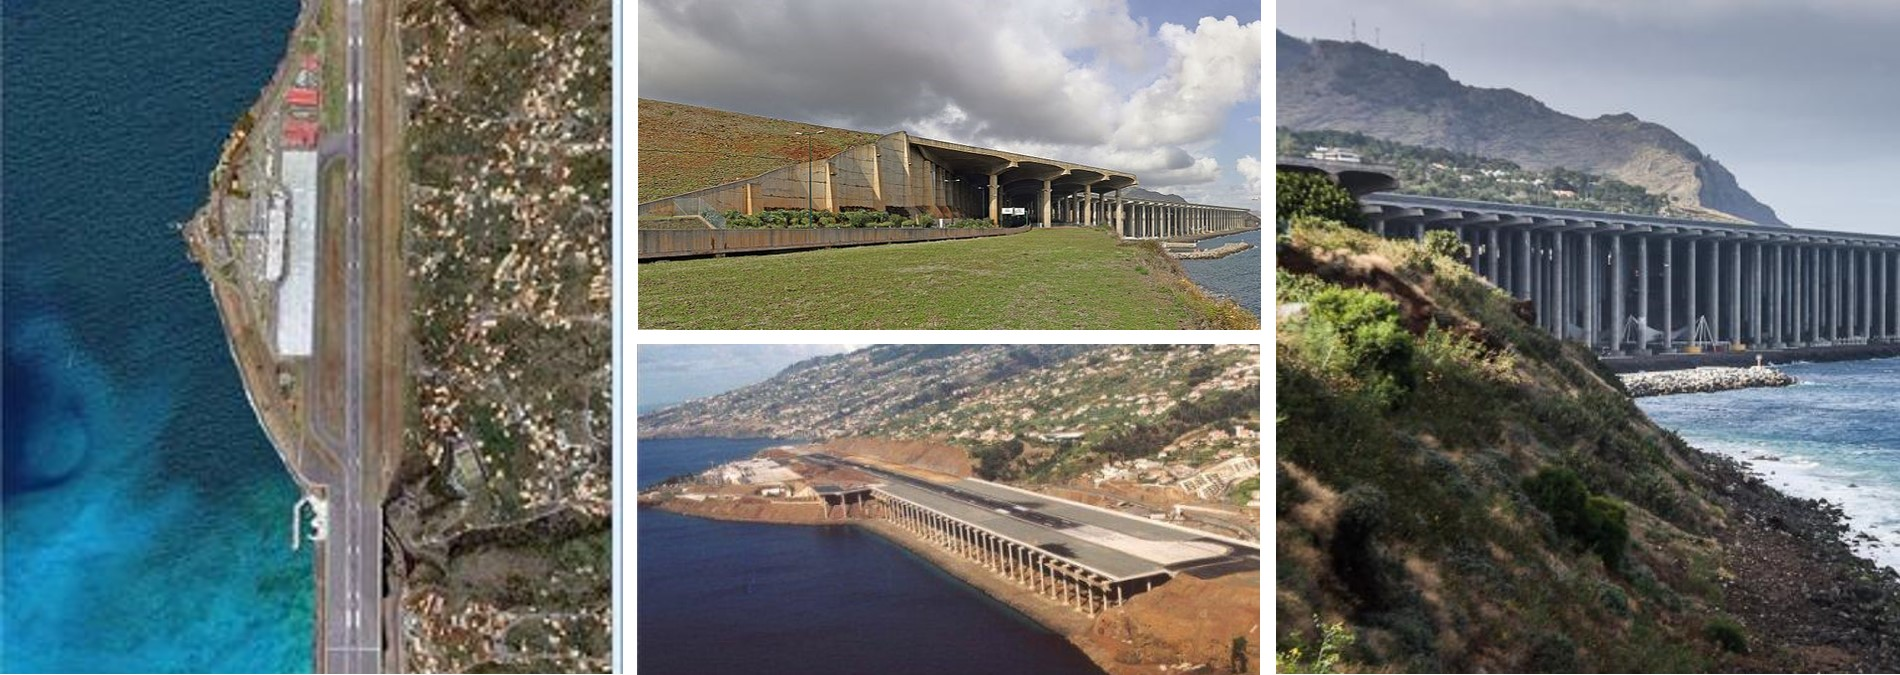 Madeira Airport Outstanding Structure Award FNC